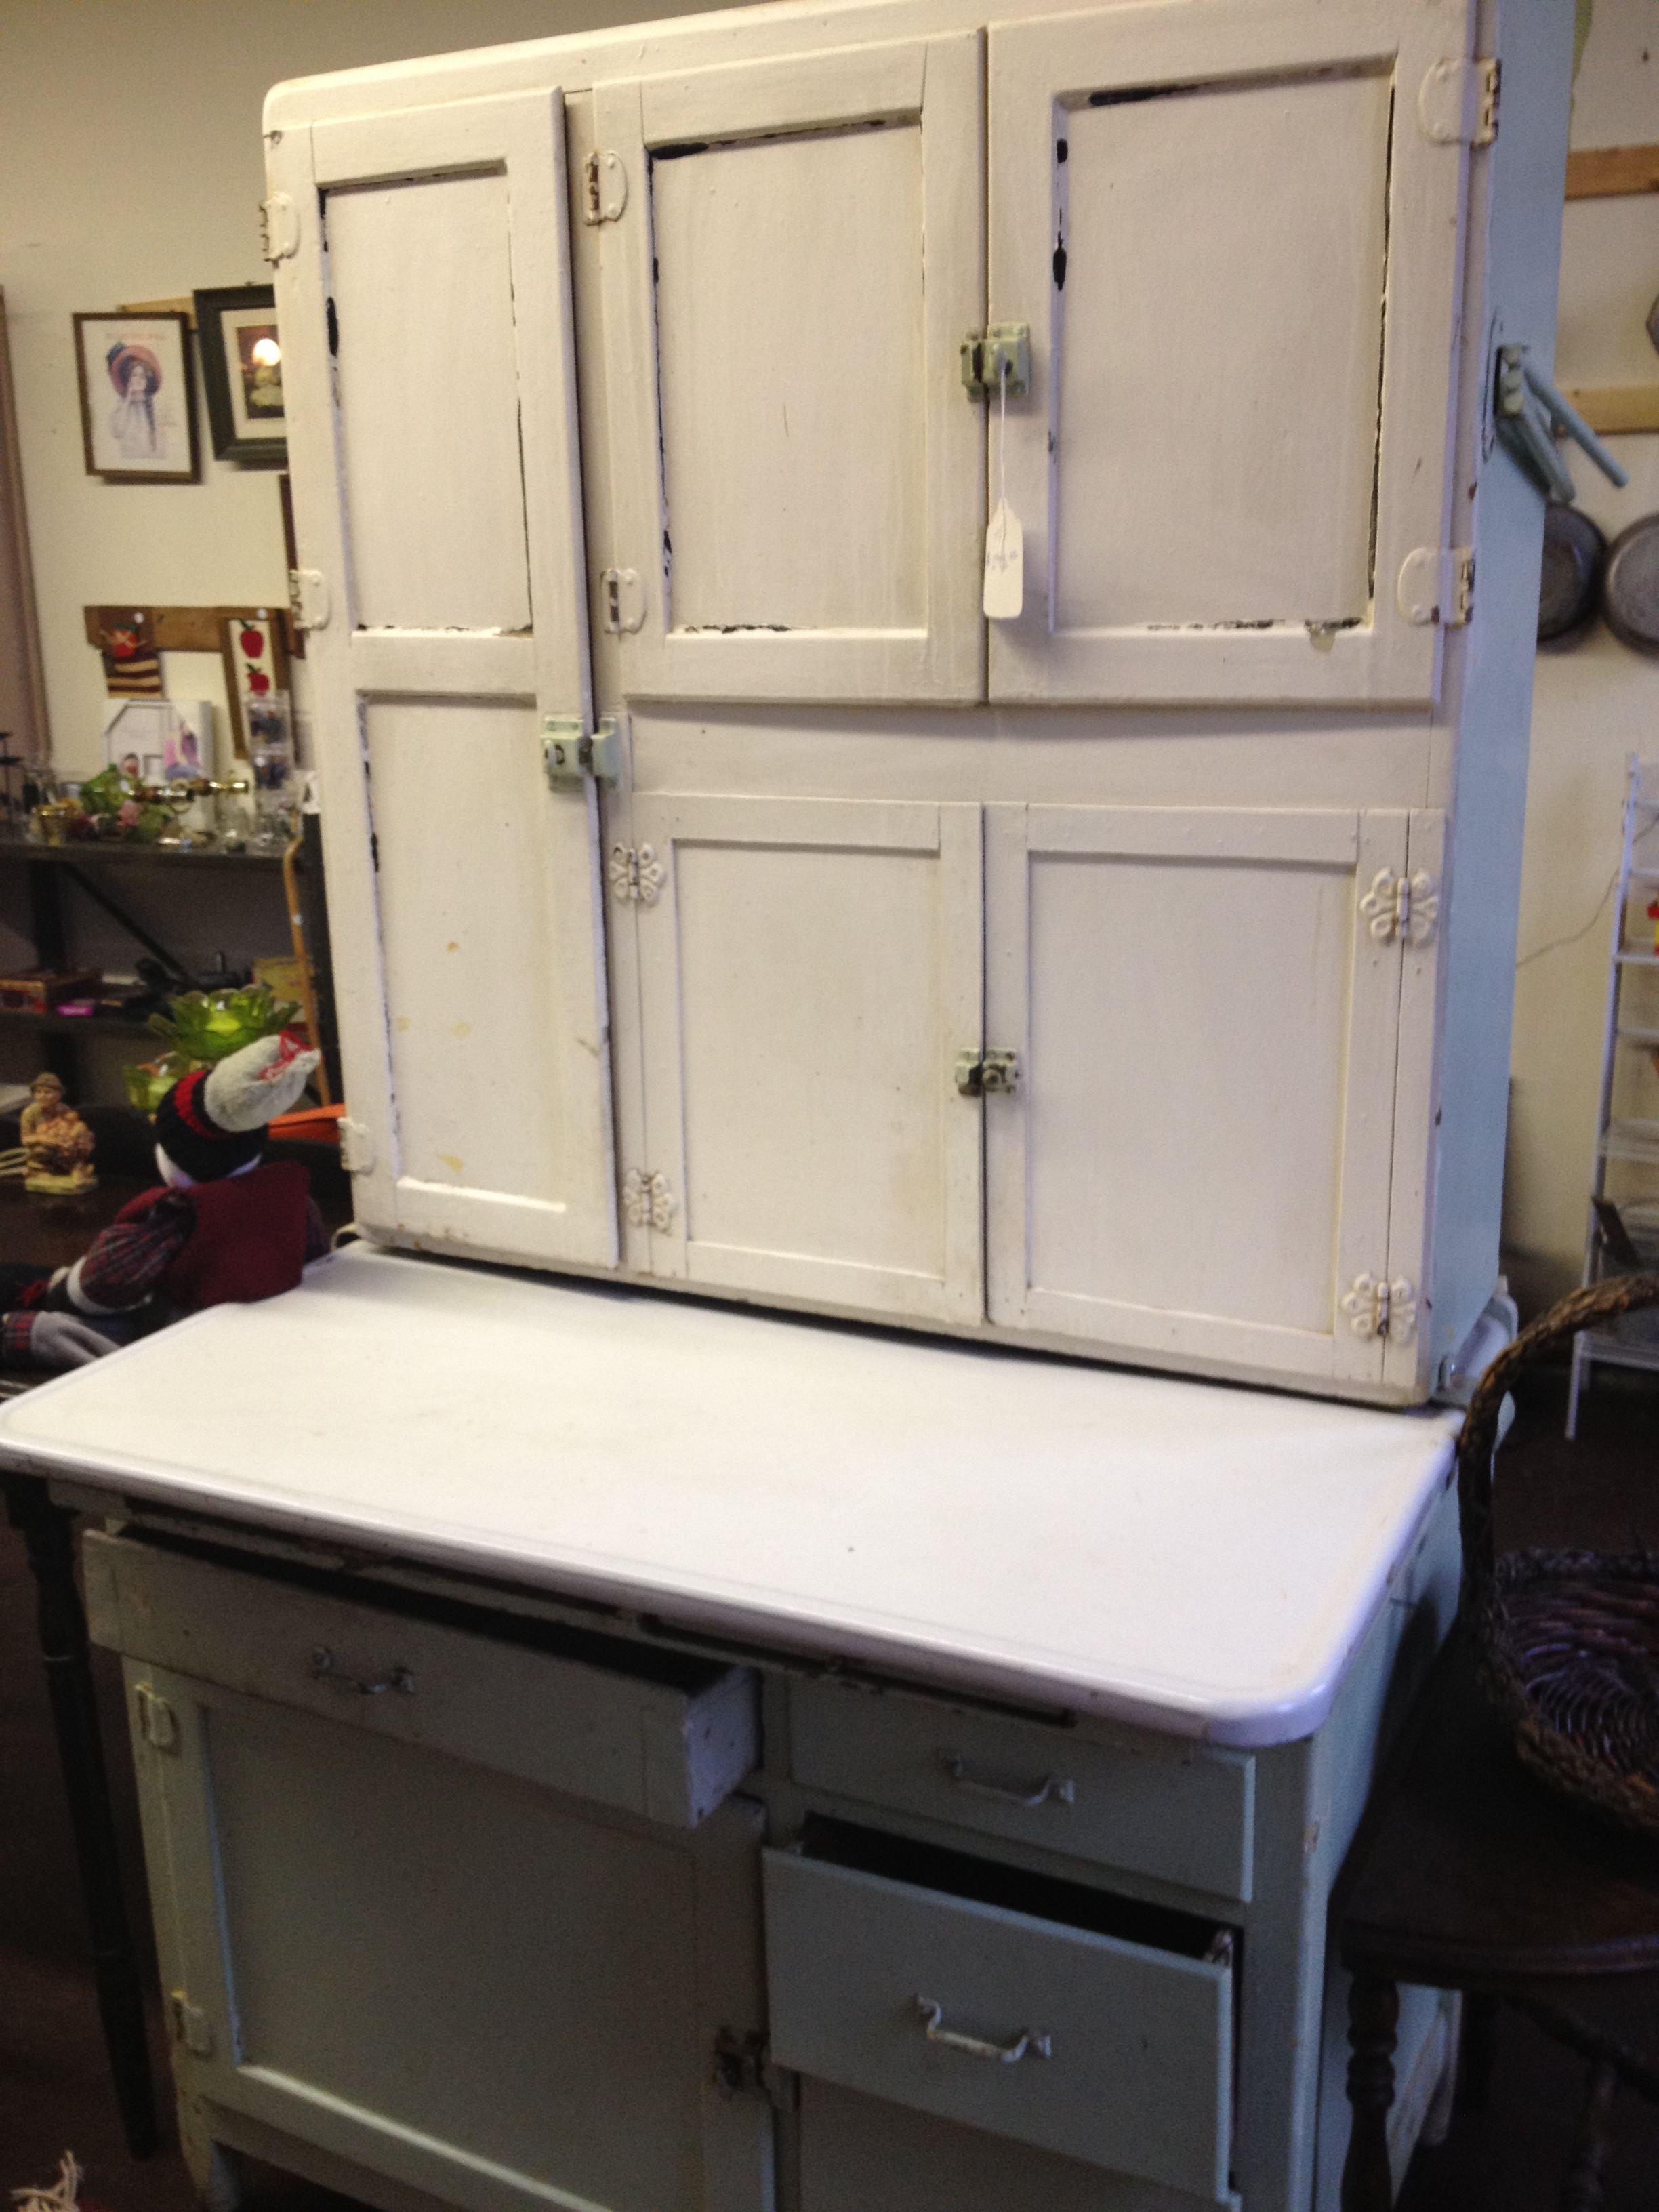 antique kitchen cabinet $200.00 at ghost in the attic antique mall ...